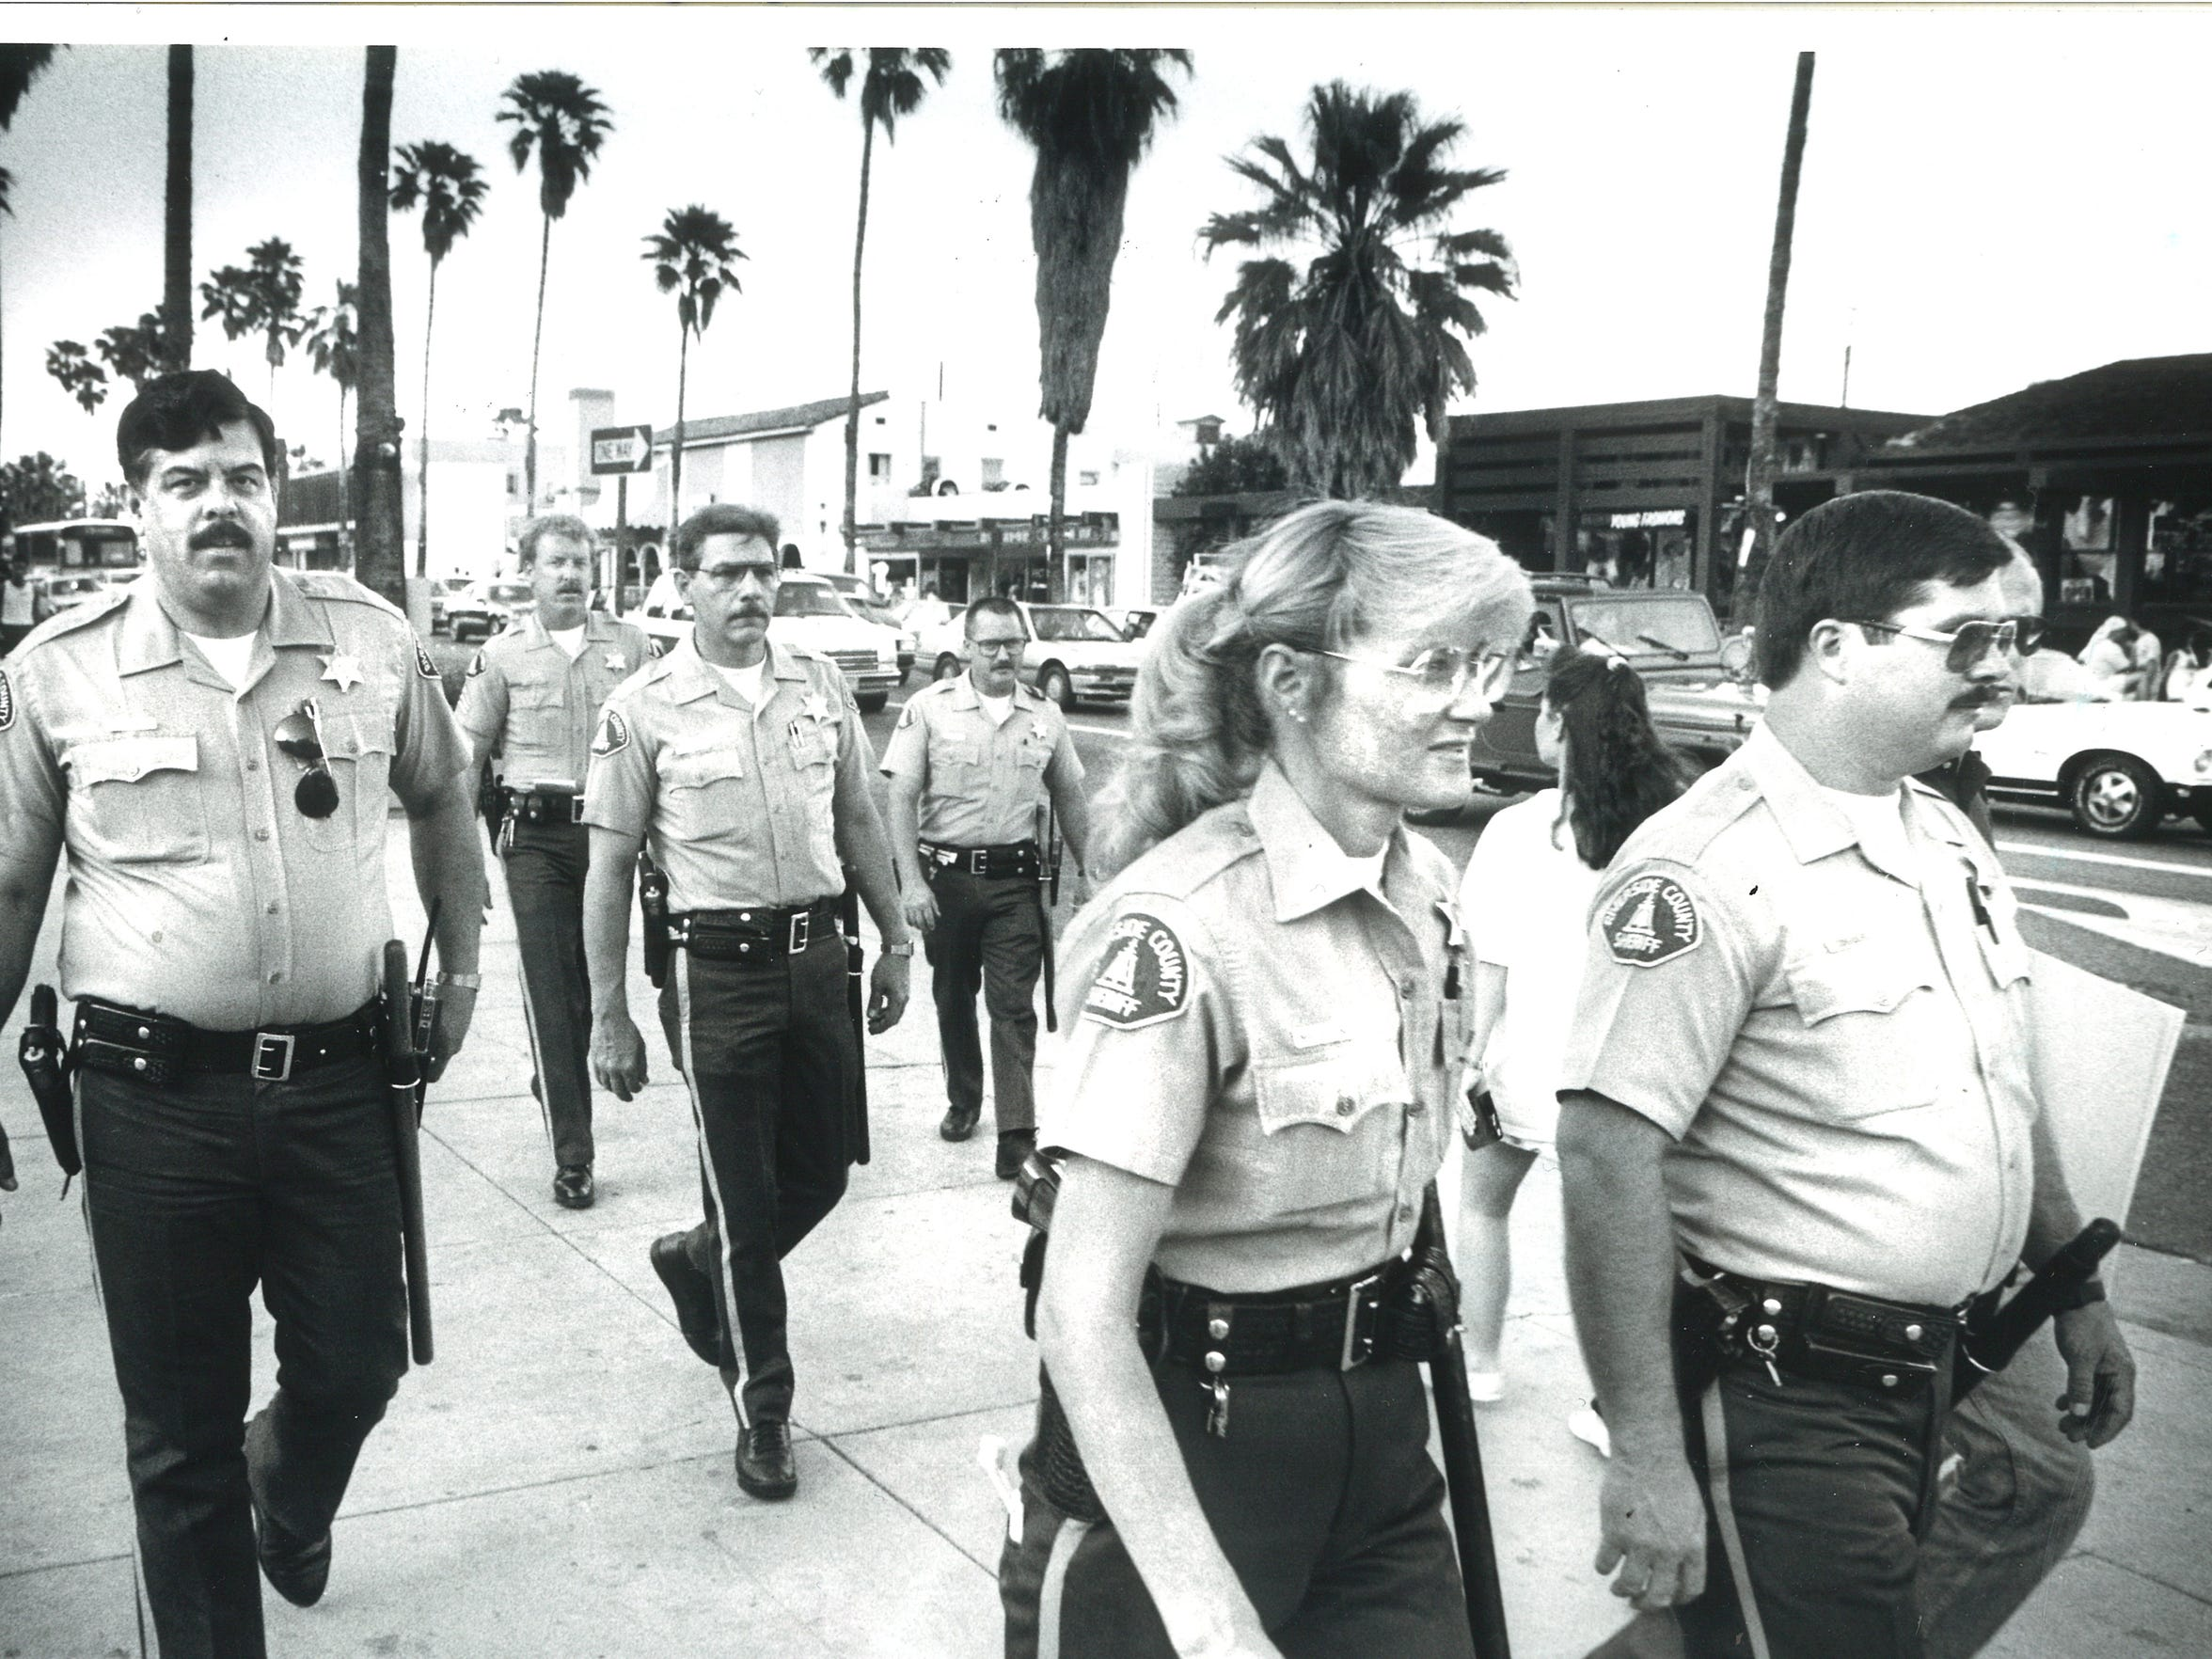 Riverside County sheriff's deputies patrol the streets of downtown Palm Springs during spring break 1988, two years after the riot.